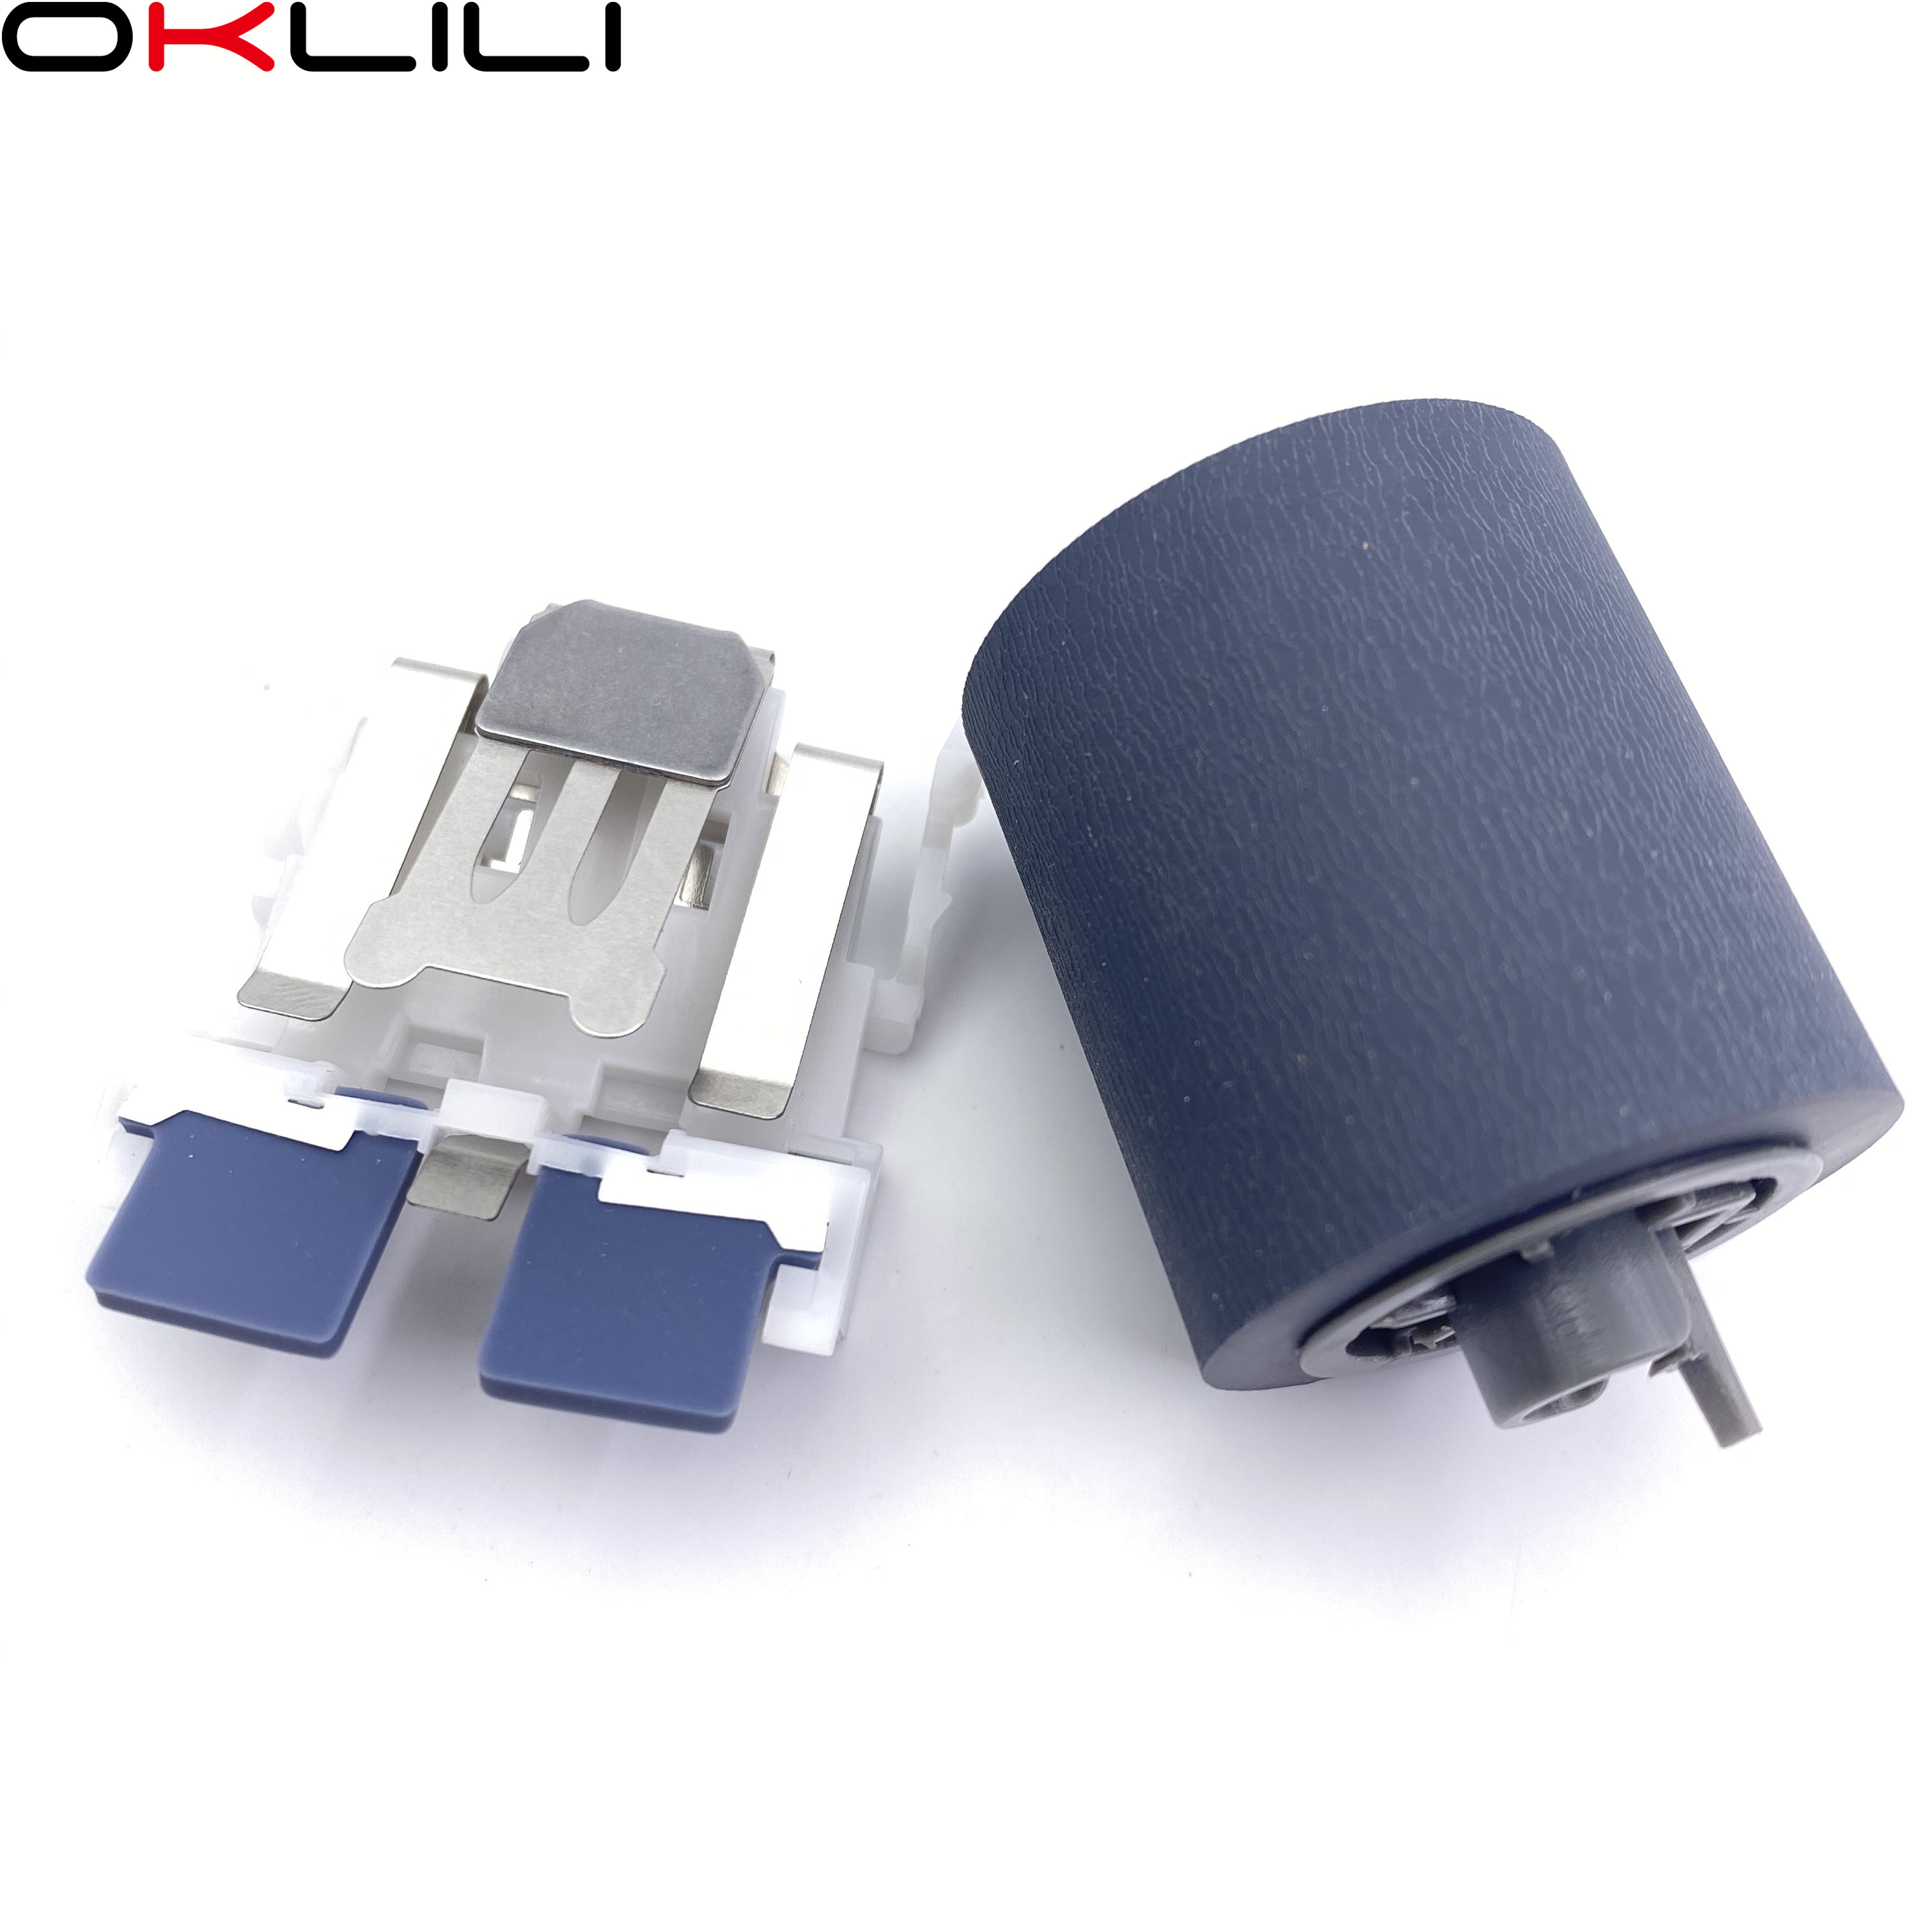 1 X PA03586-0001 PA03586-0002 Consumable Pick Roller Pad Assy Assembly Pickup Separation For Fujitsu S1500 S1500M Fi-6110 N1800